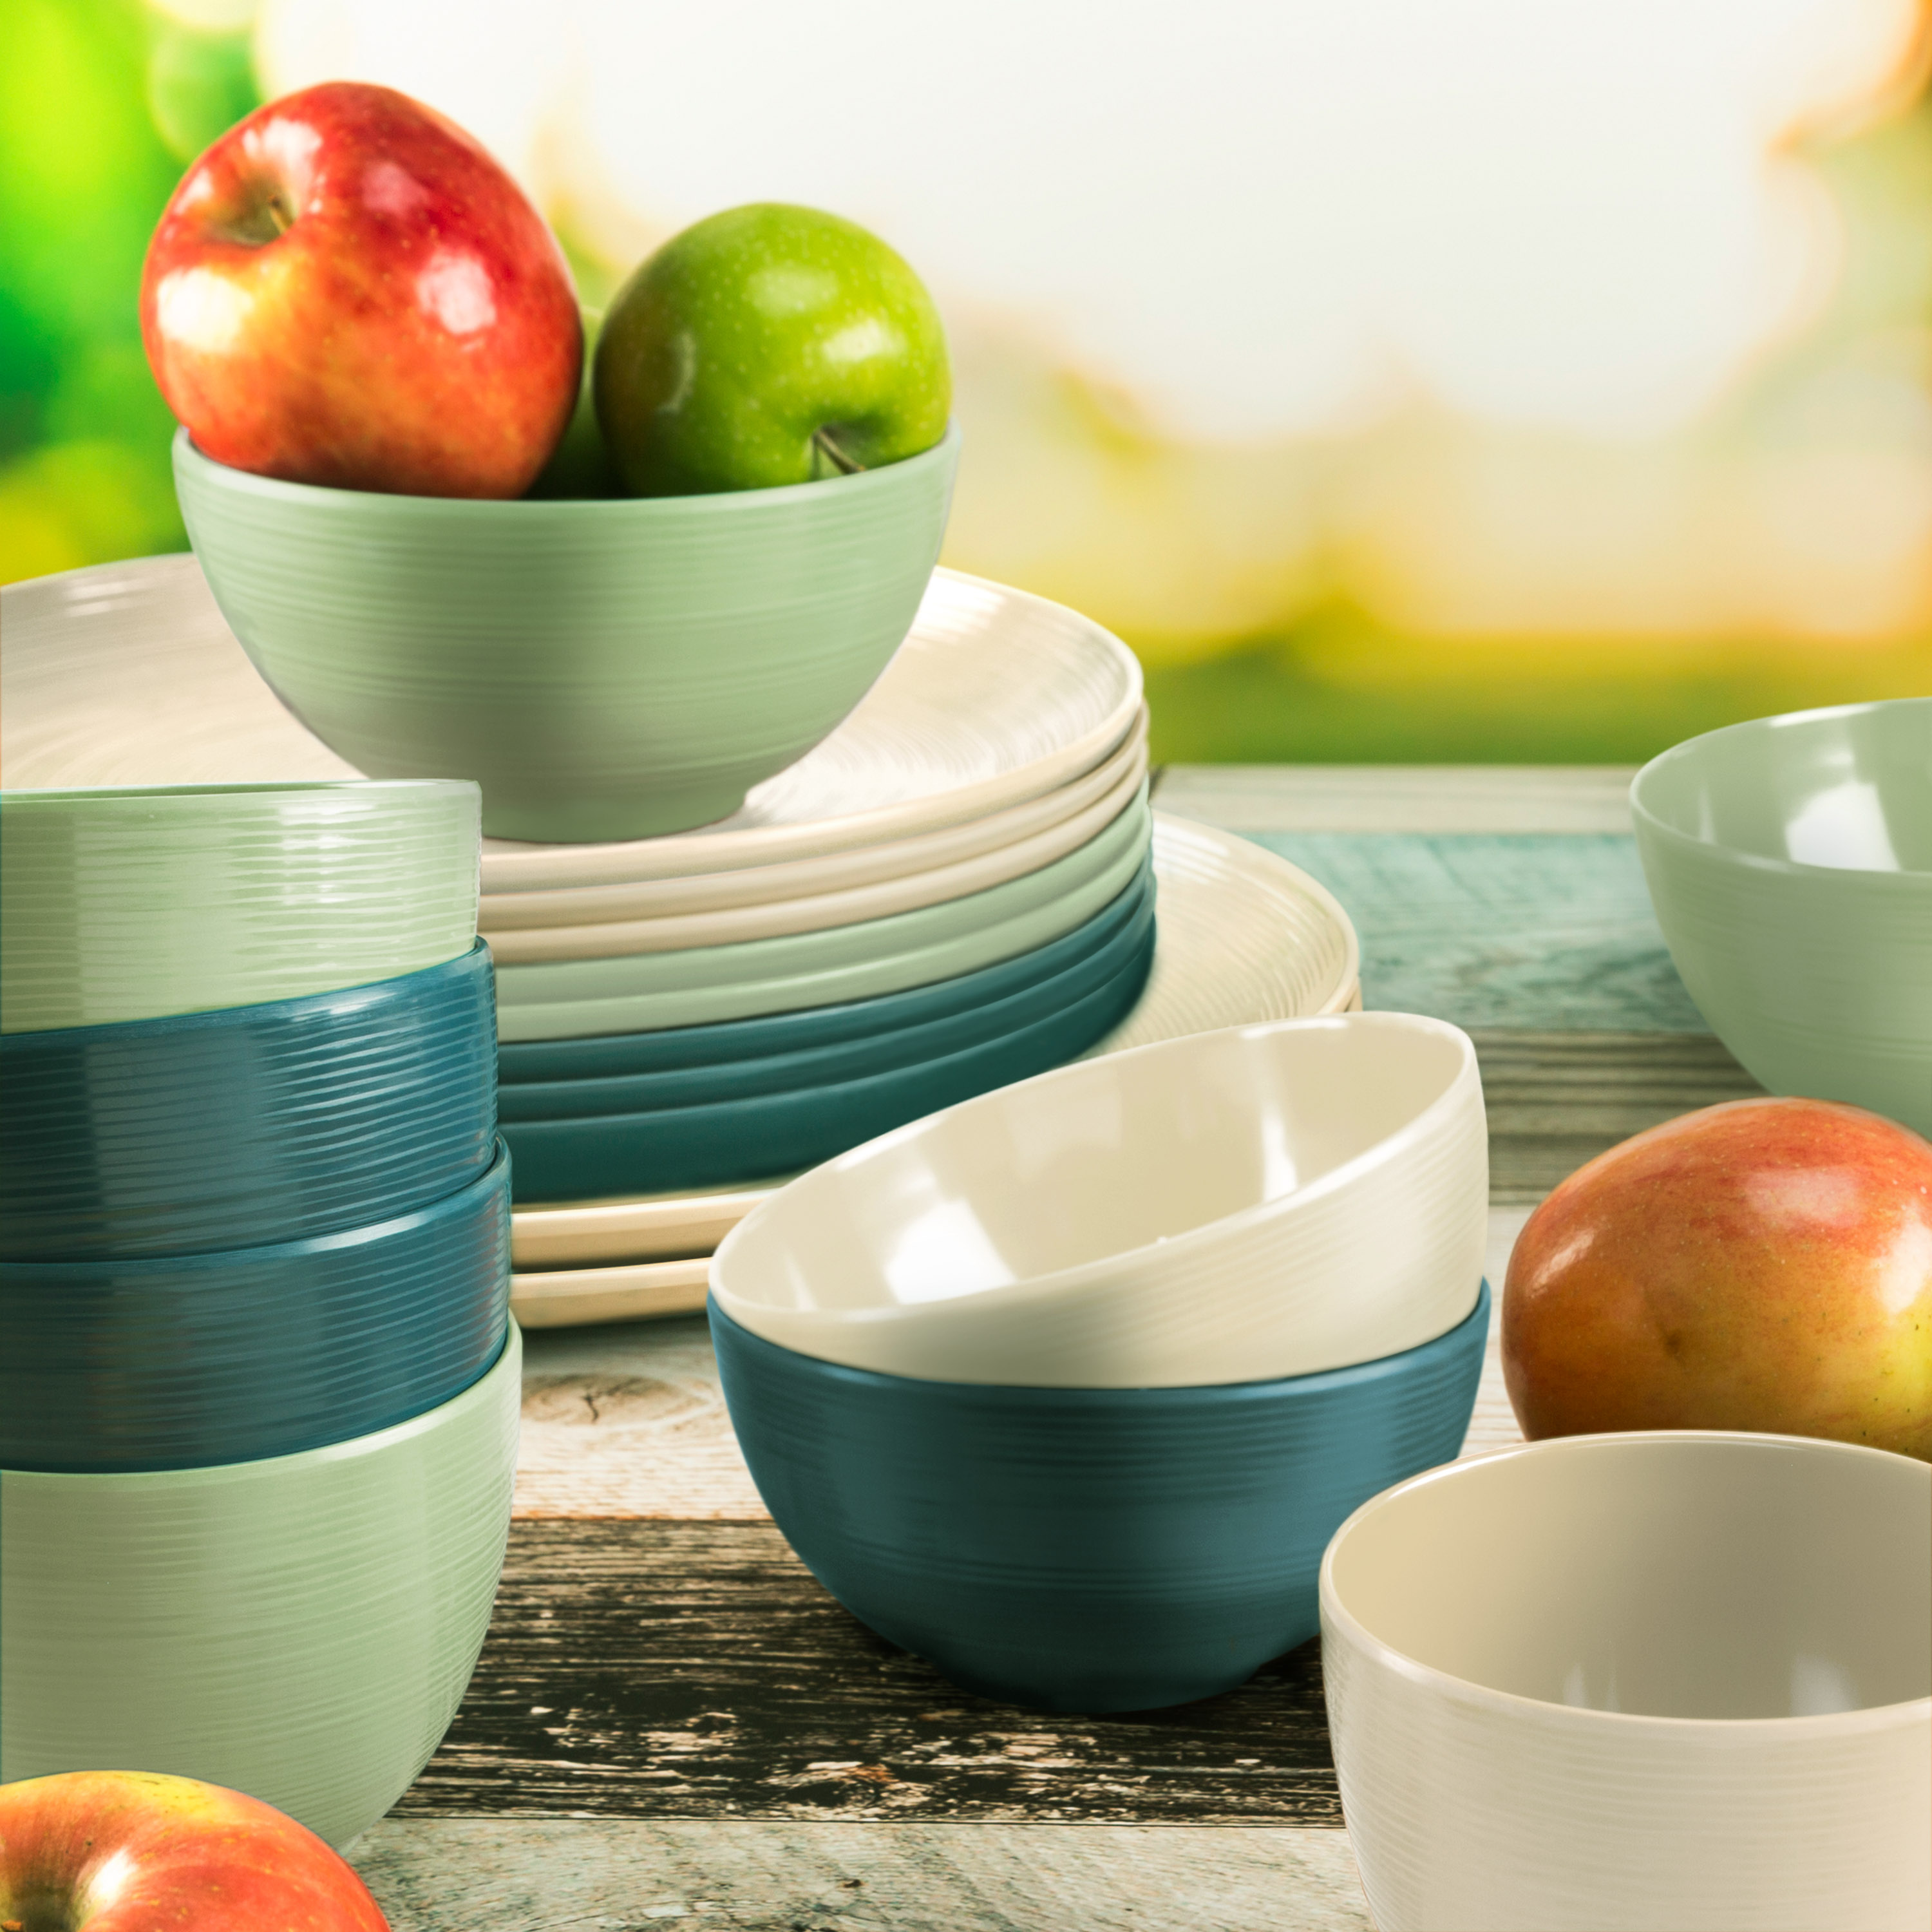 American Conventional Plate & Bowl Sets, Marine, 12-piece set slideshow image 5